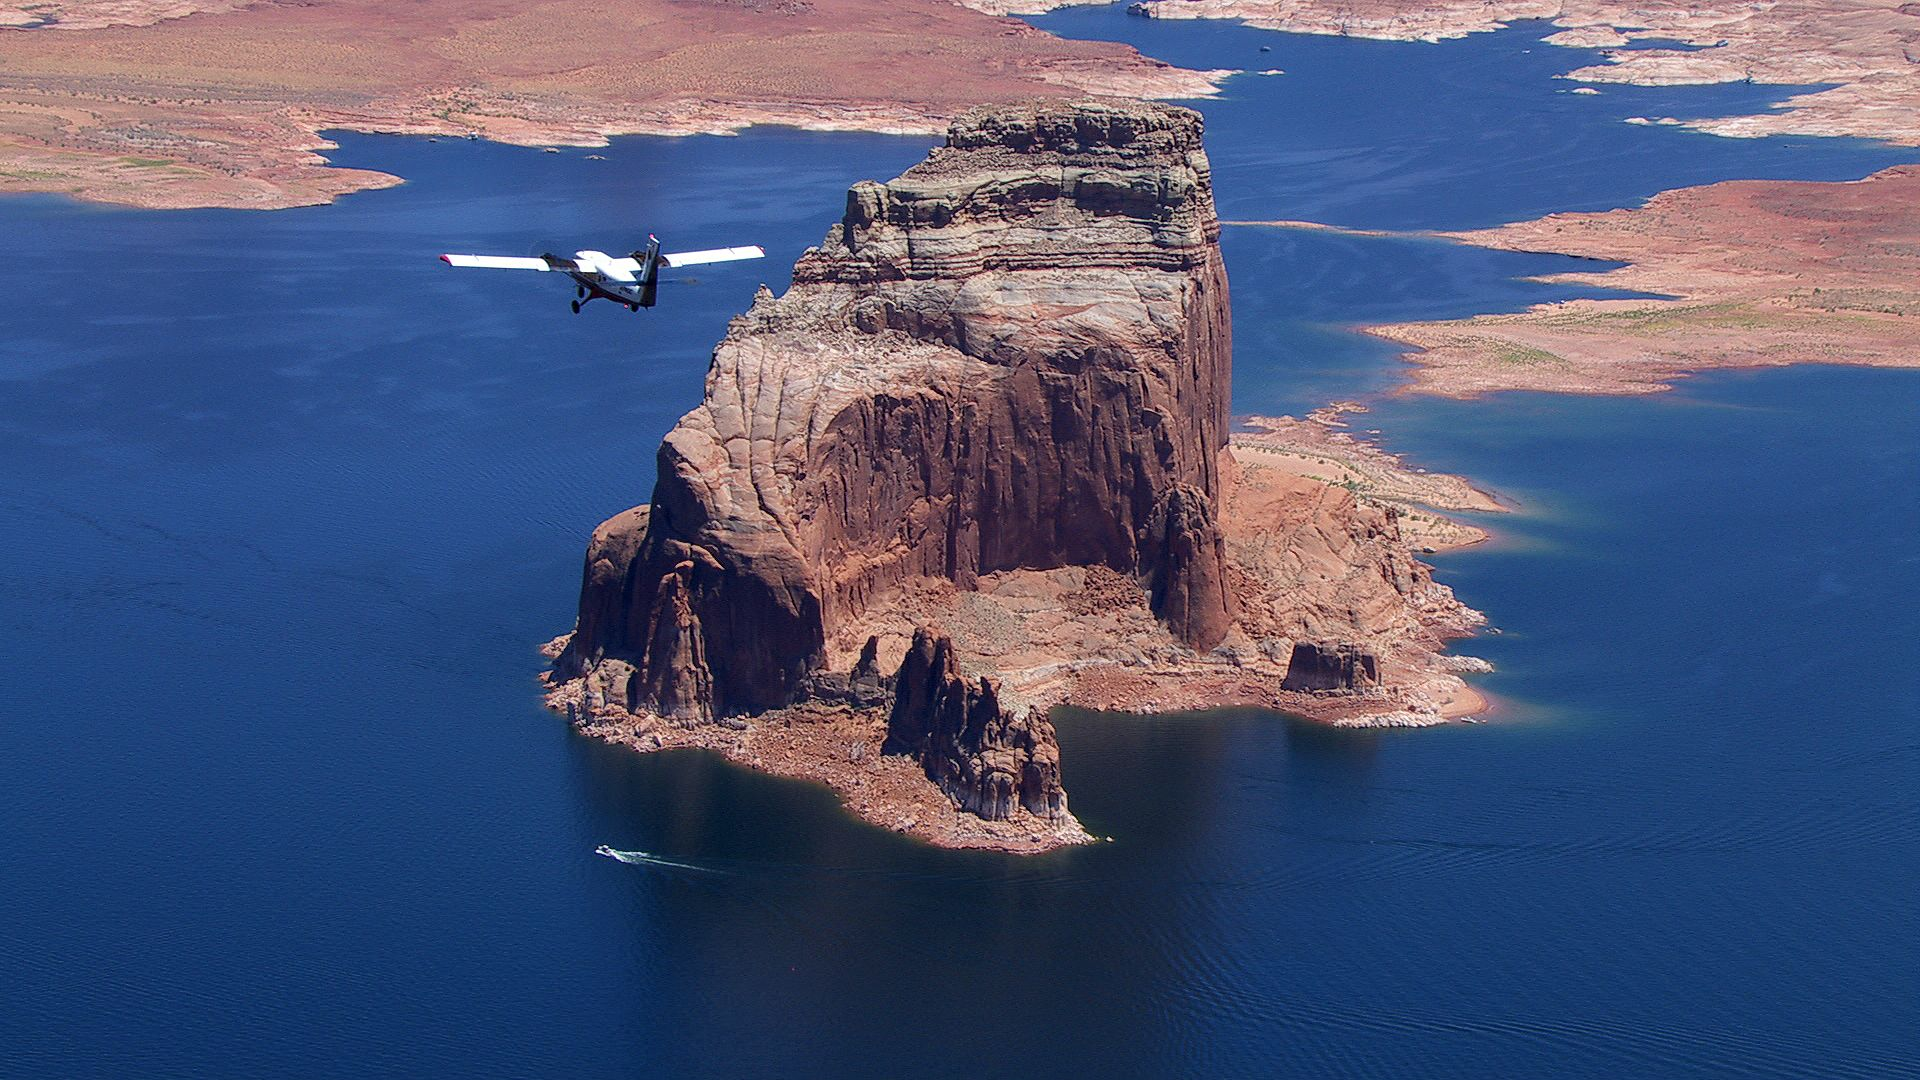 Castle rock formation at Lake Powell in Page, Arizona